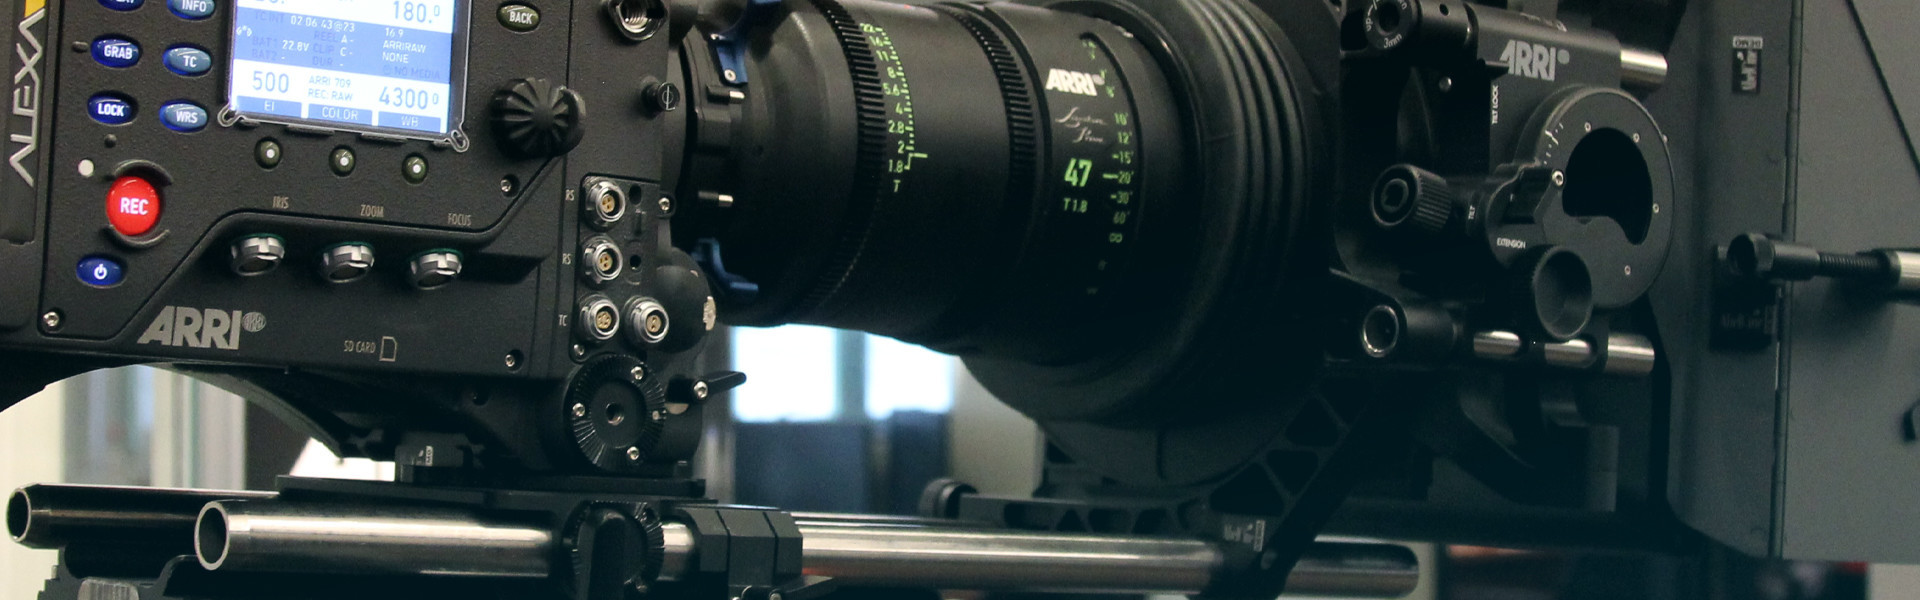 Header image for article Accessorize Your Camera with ARRI Accessories